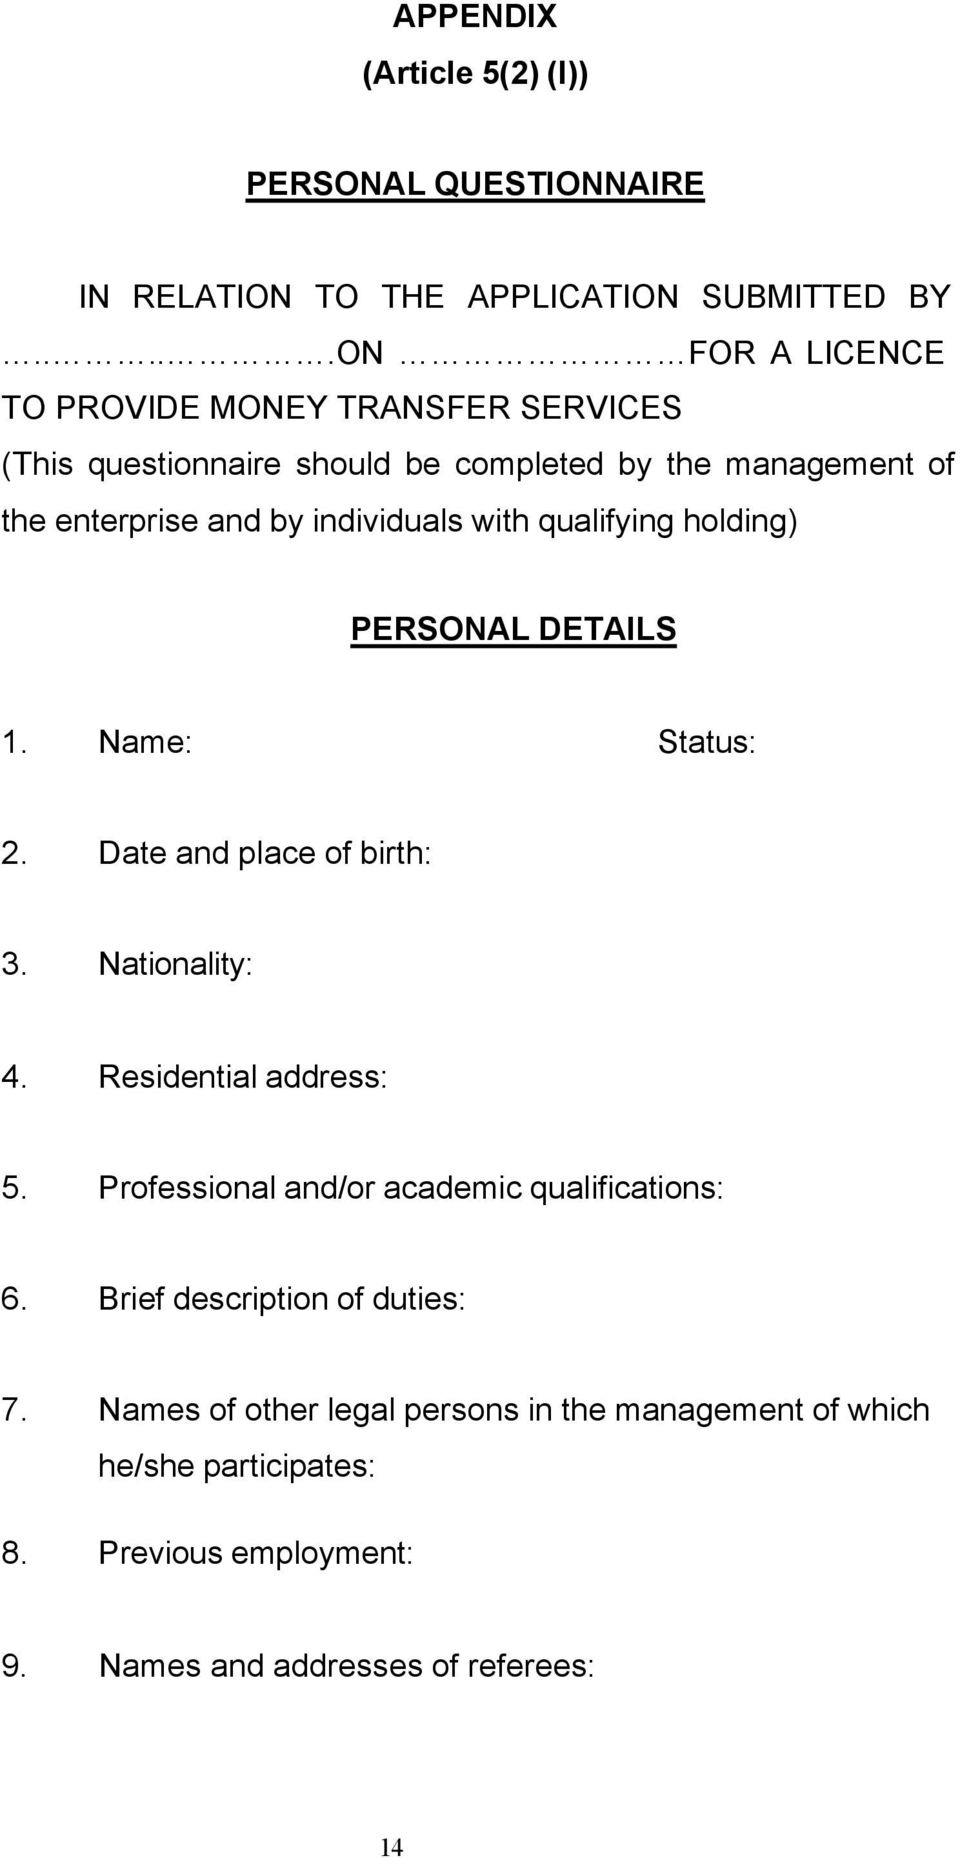 individuals with qualifying holding) PERSONAL DETAILS 1. Name: Status: 2. Date and place of birth: 3. Nationality: 4. Residential address: 5.